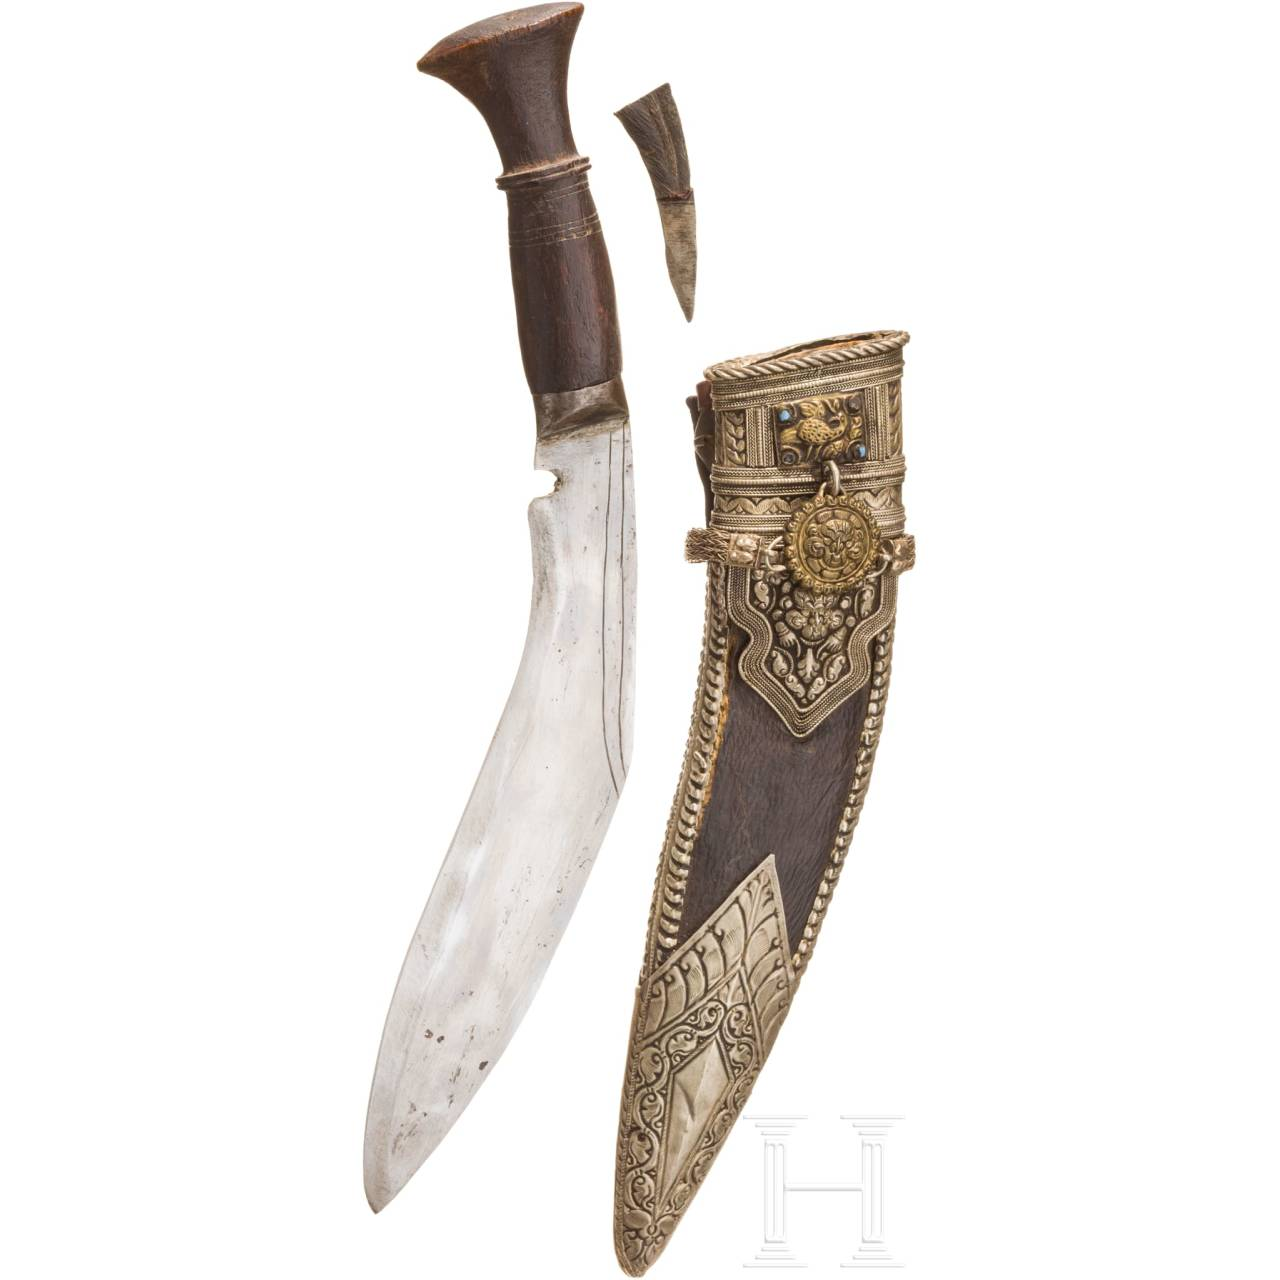 A nickel silver mounted khukri, Nepal, 1st half of the 20th century